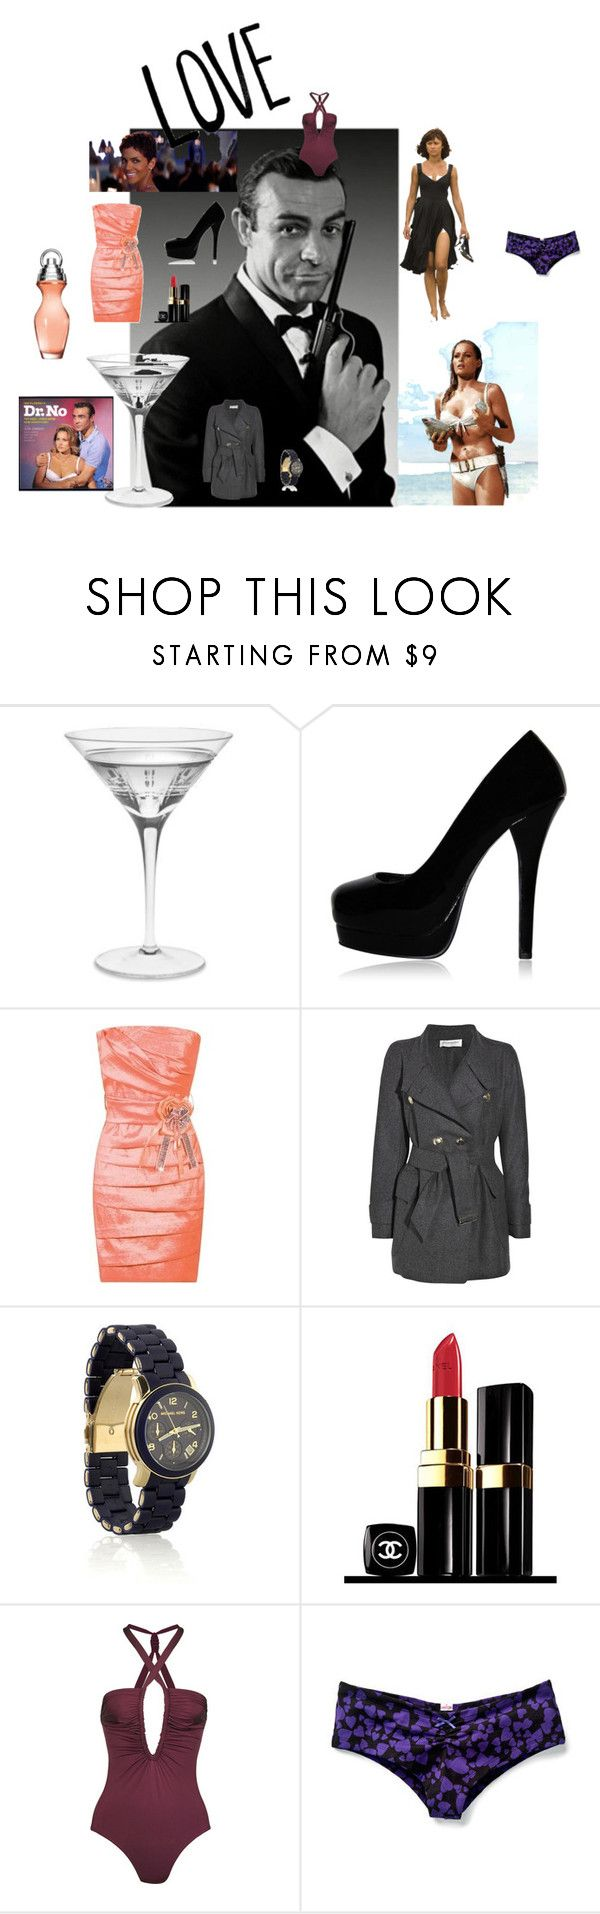 """007"" by pixiedust28 ❤ liked on Polyvore featuring James Bond 007, Prada, Williams-Sonoma, Yves Saint Laurent, Michael Kors, Chanel, Diane Von Furstenberg, Victoria's Secret, bond girl pictures and watch"